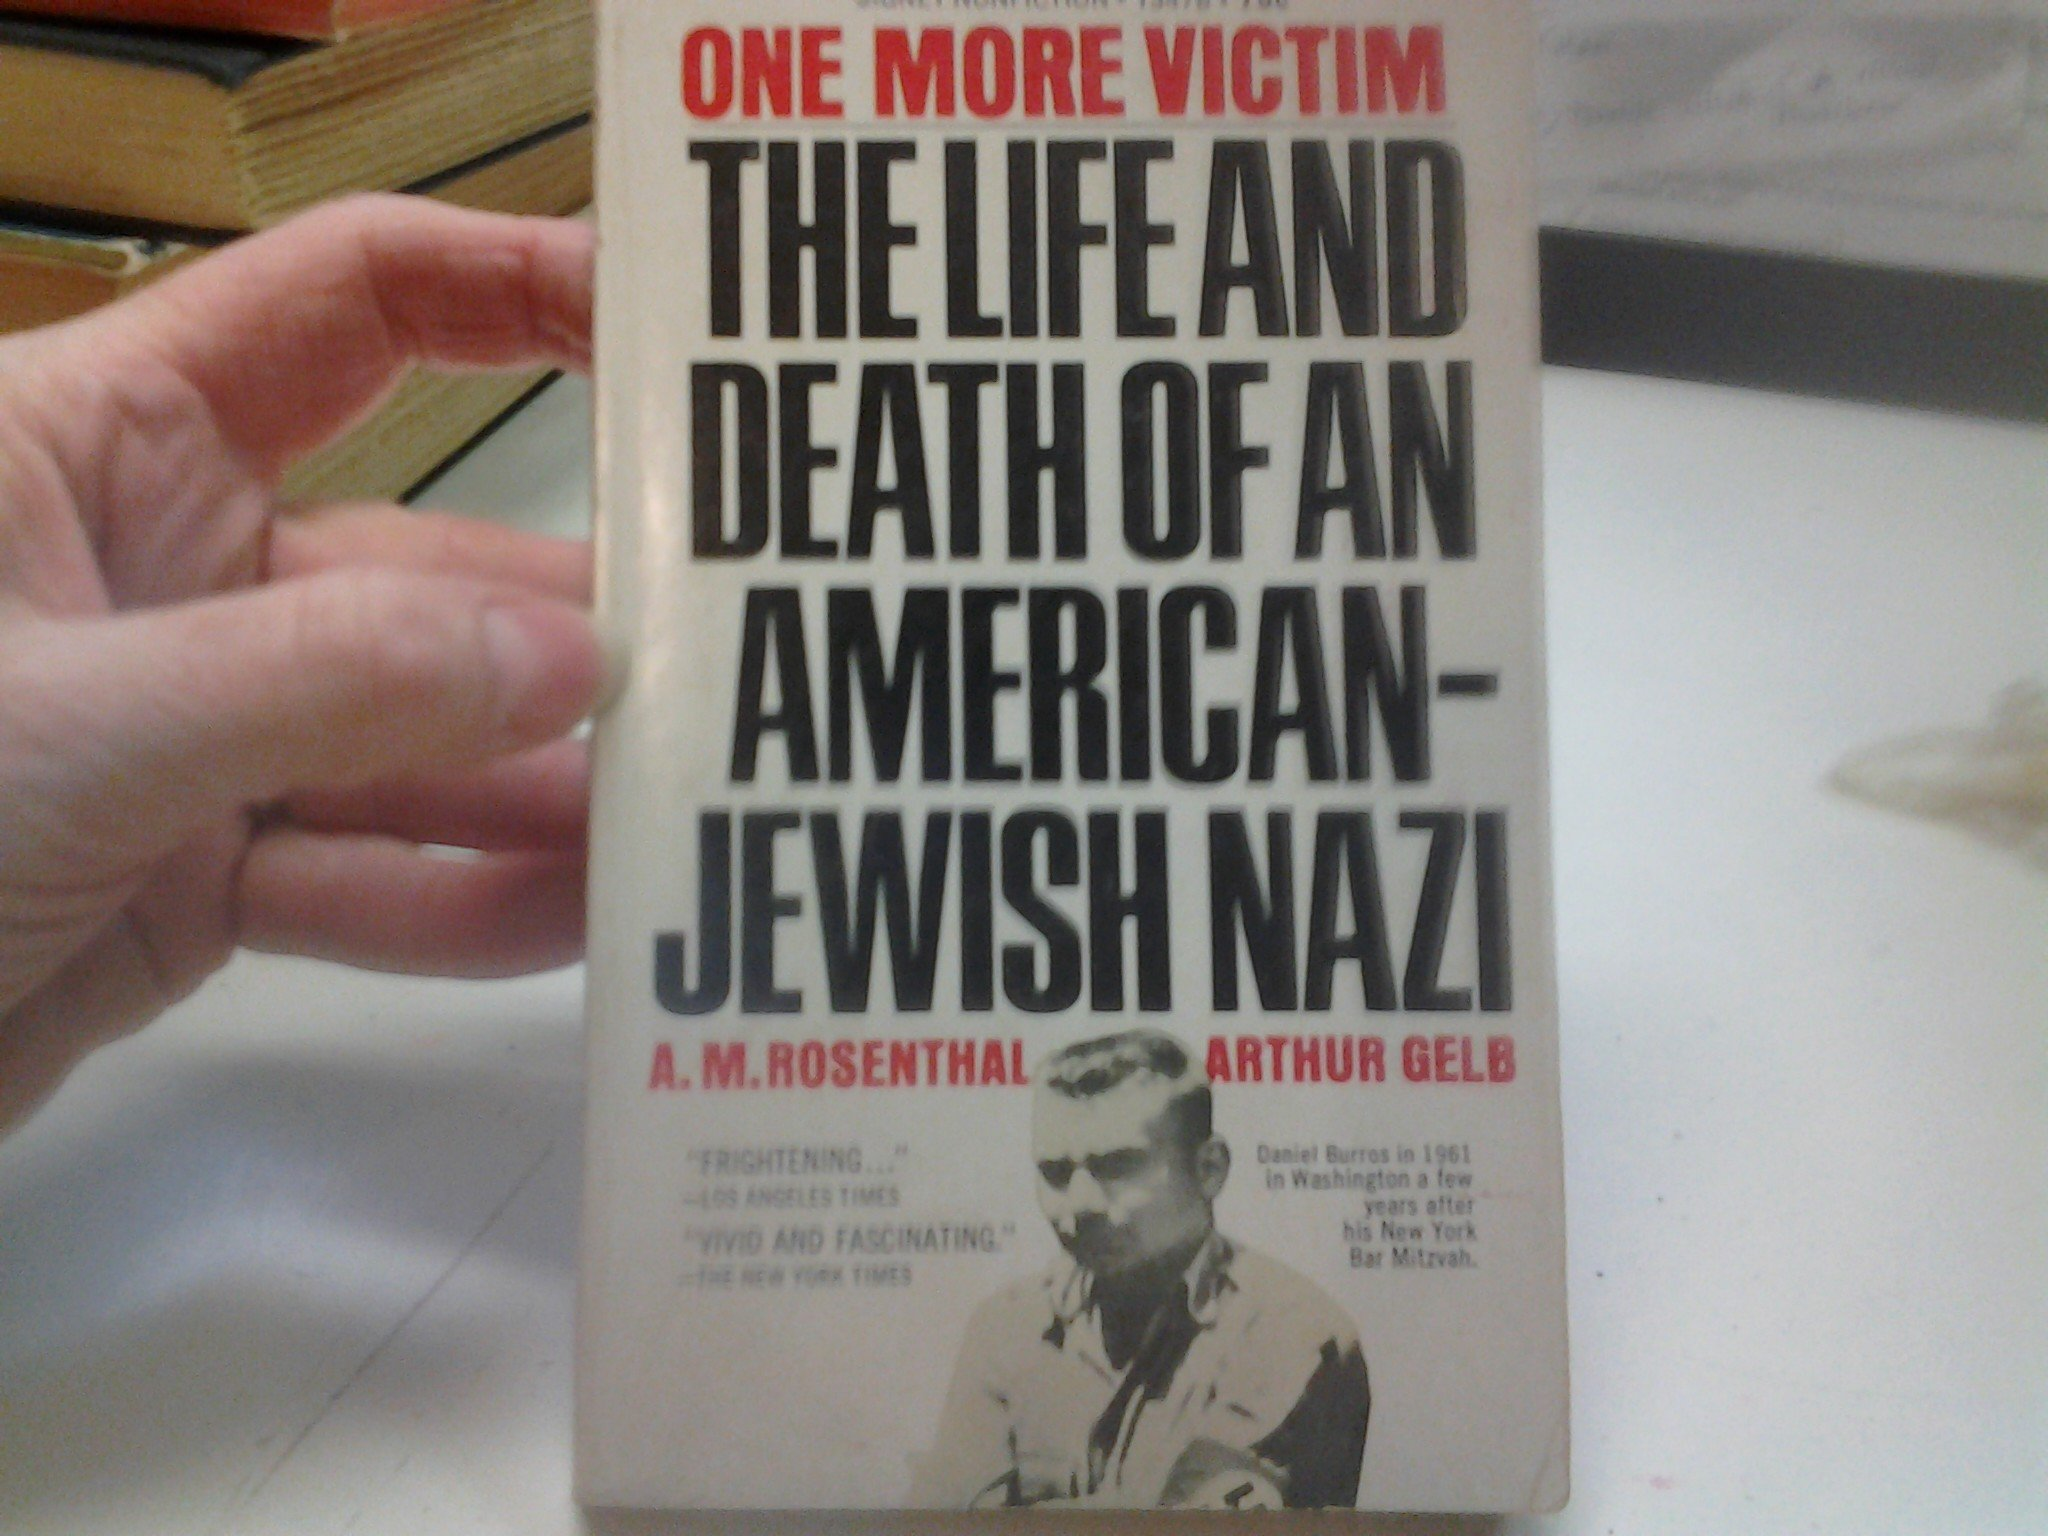 One More Victim: The Life and Death of an American-Jewish Nazi, A. M. Rosenthal; And Arthur Gelb